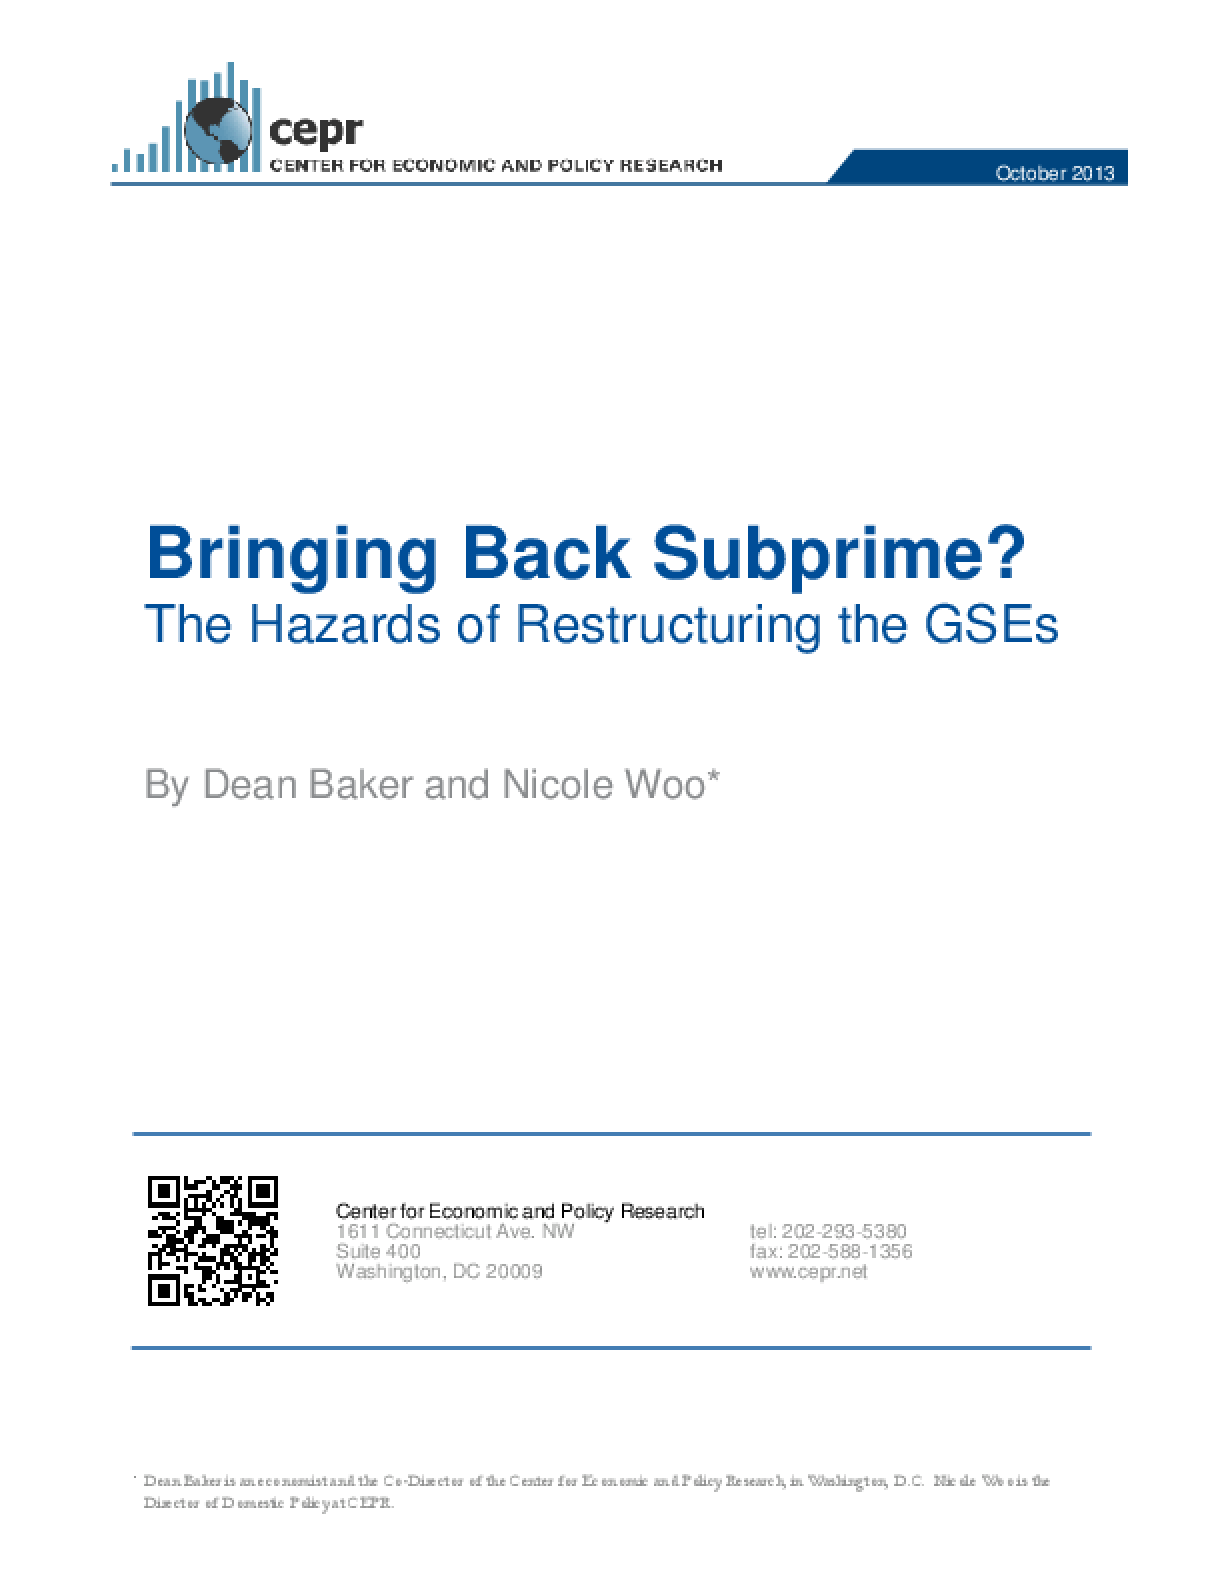 Bringing Back Subprime? The Hazards of Restructuring the GSEs